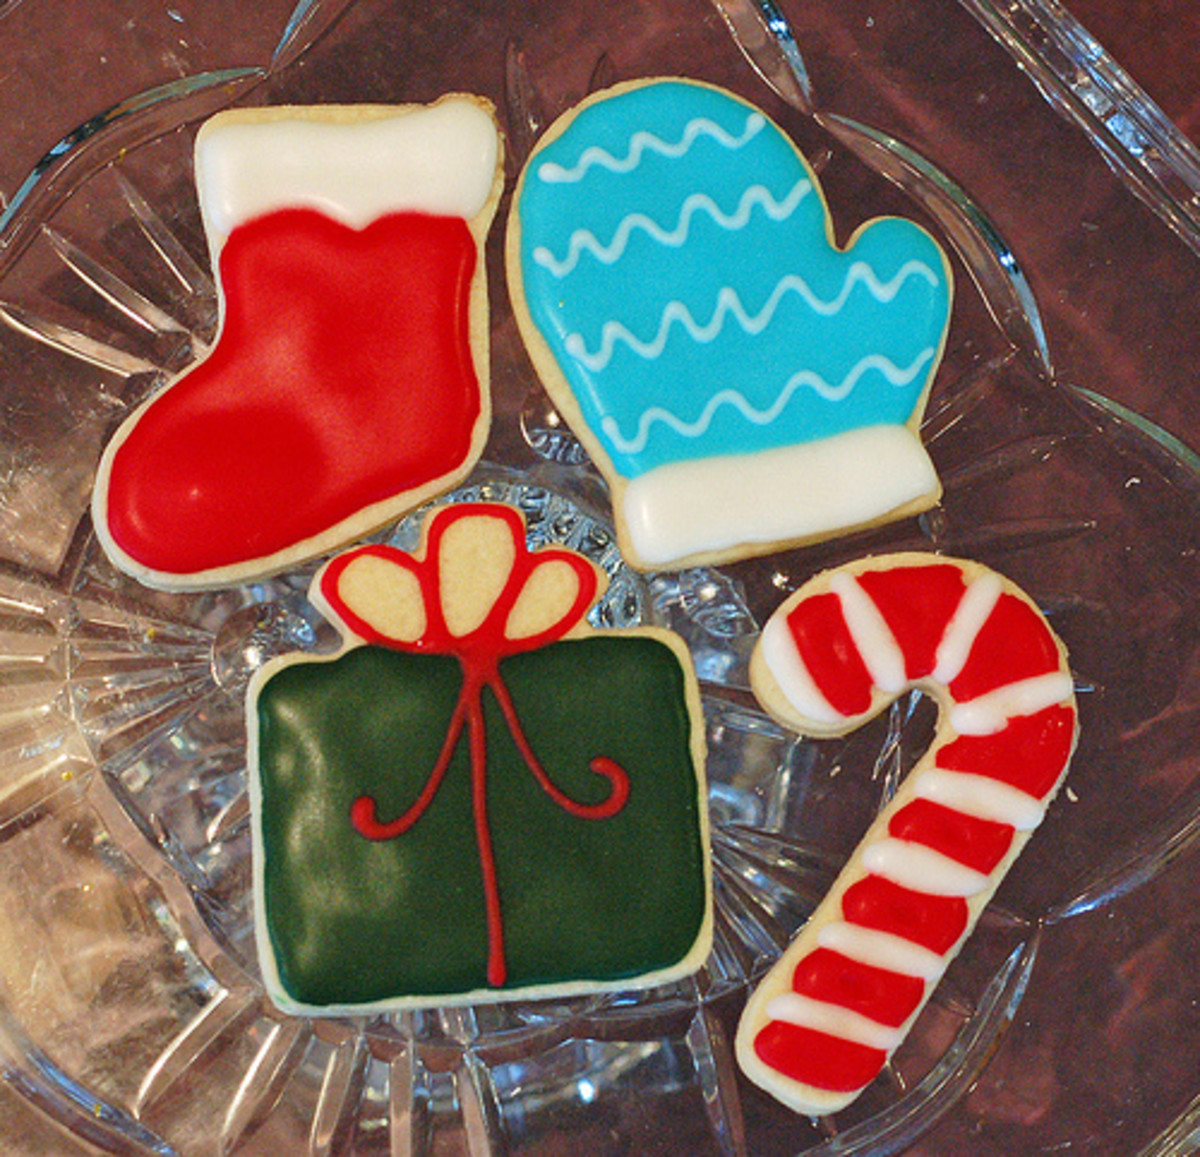 Sugar Cookies with Colored Icing (Photo: Samdogs/Flickr.com)